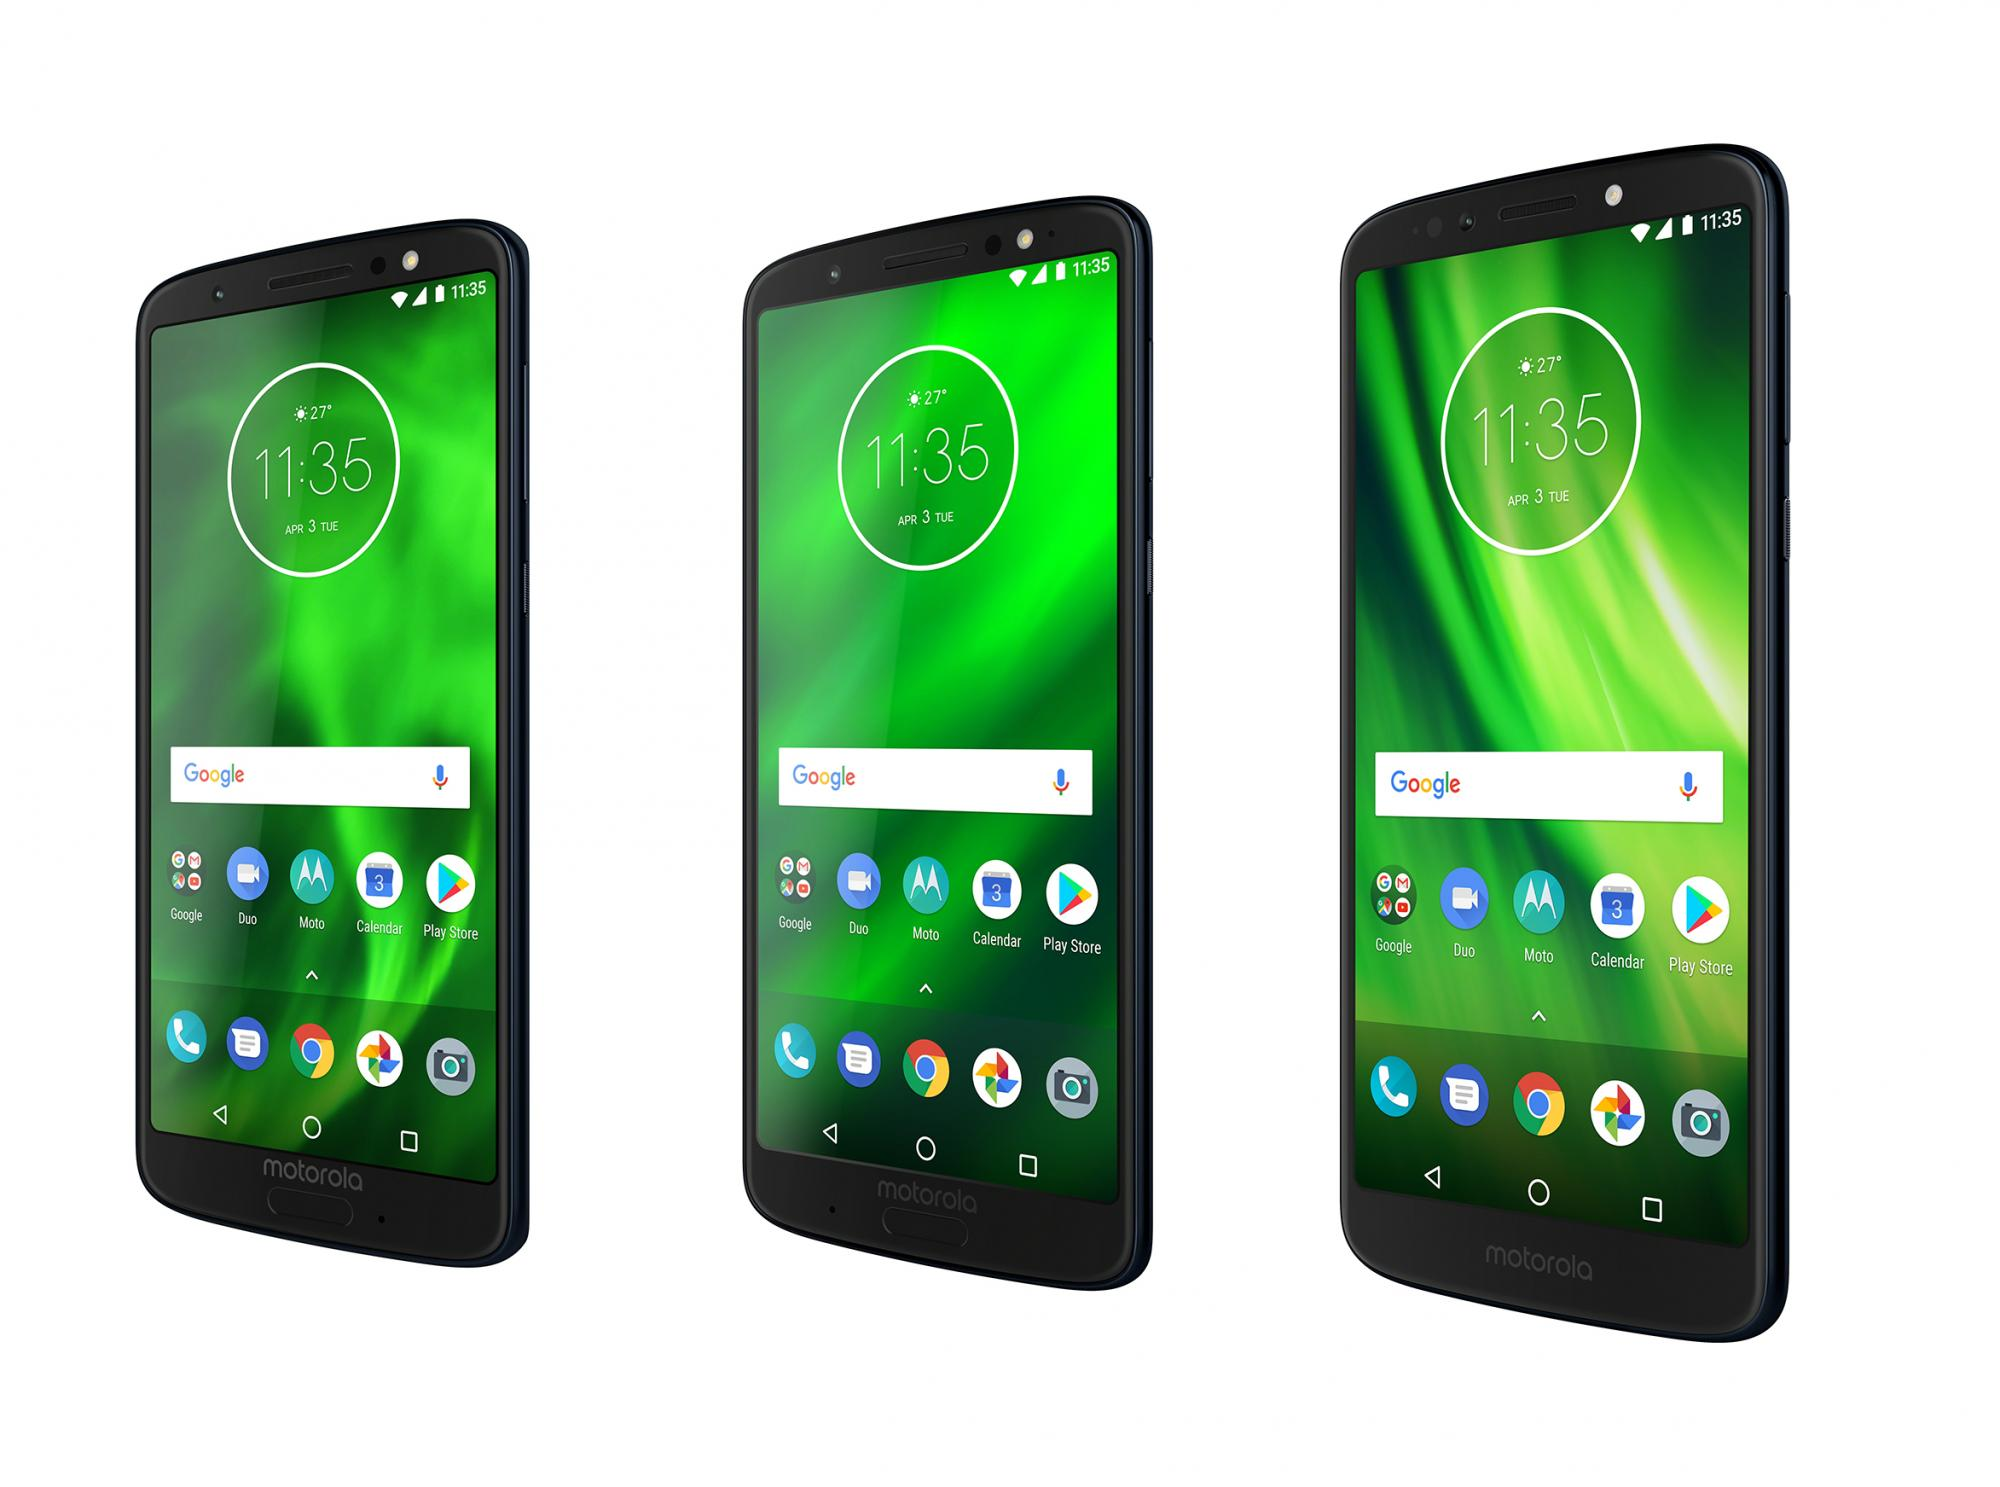 Motorola launches the Moto G6, G6 Plus and G6 Play